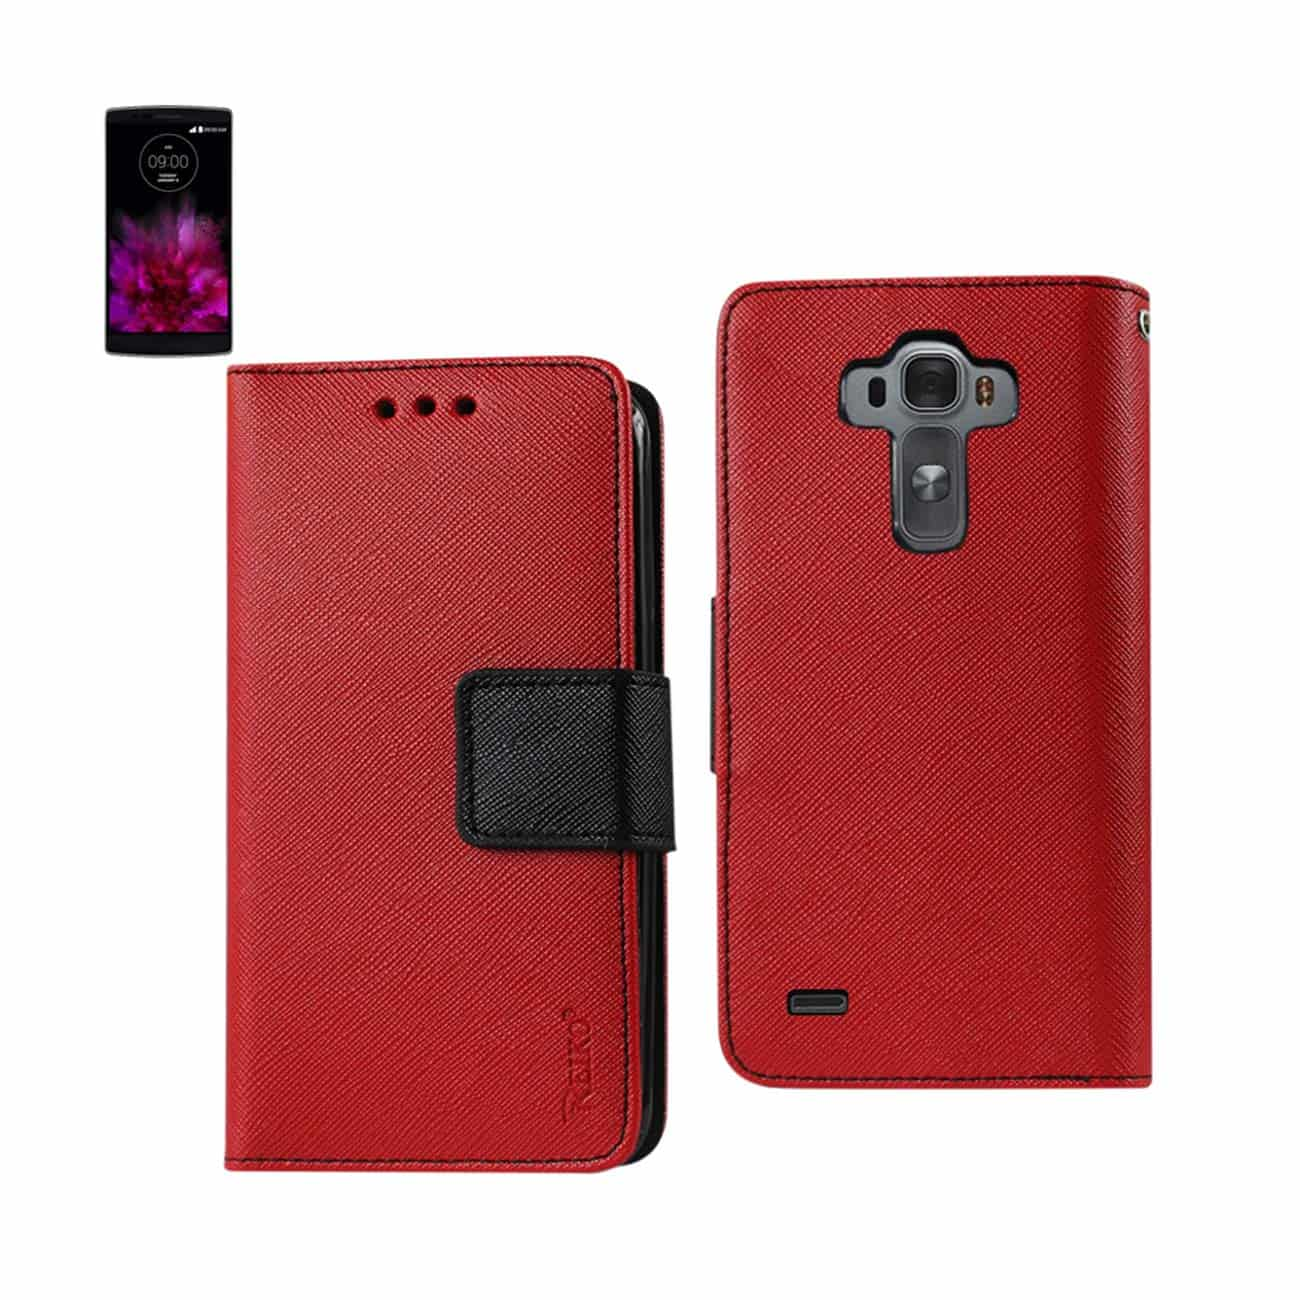 LG G FLEX 2 3-IN-1 WALLET CASE IN RED